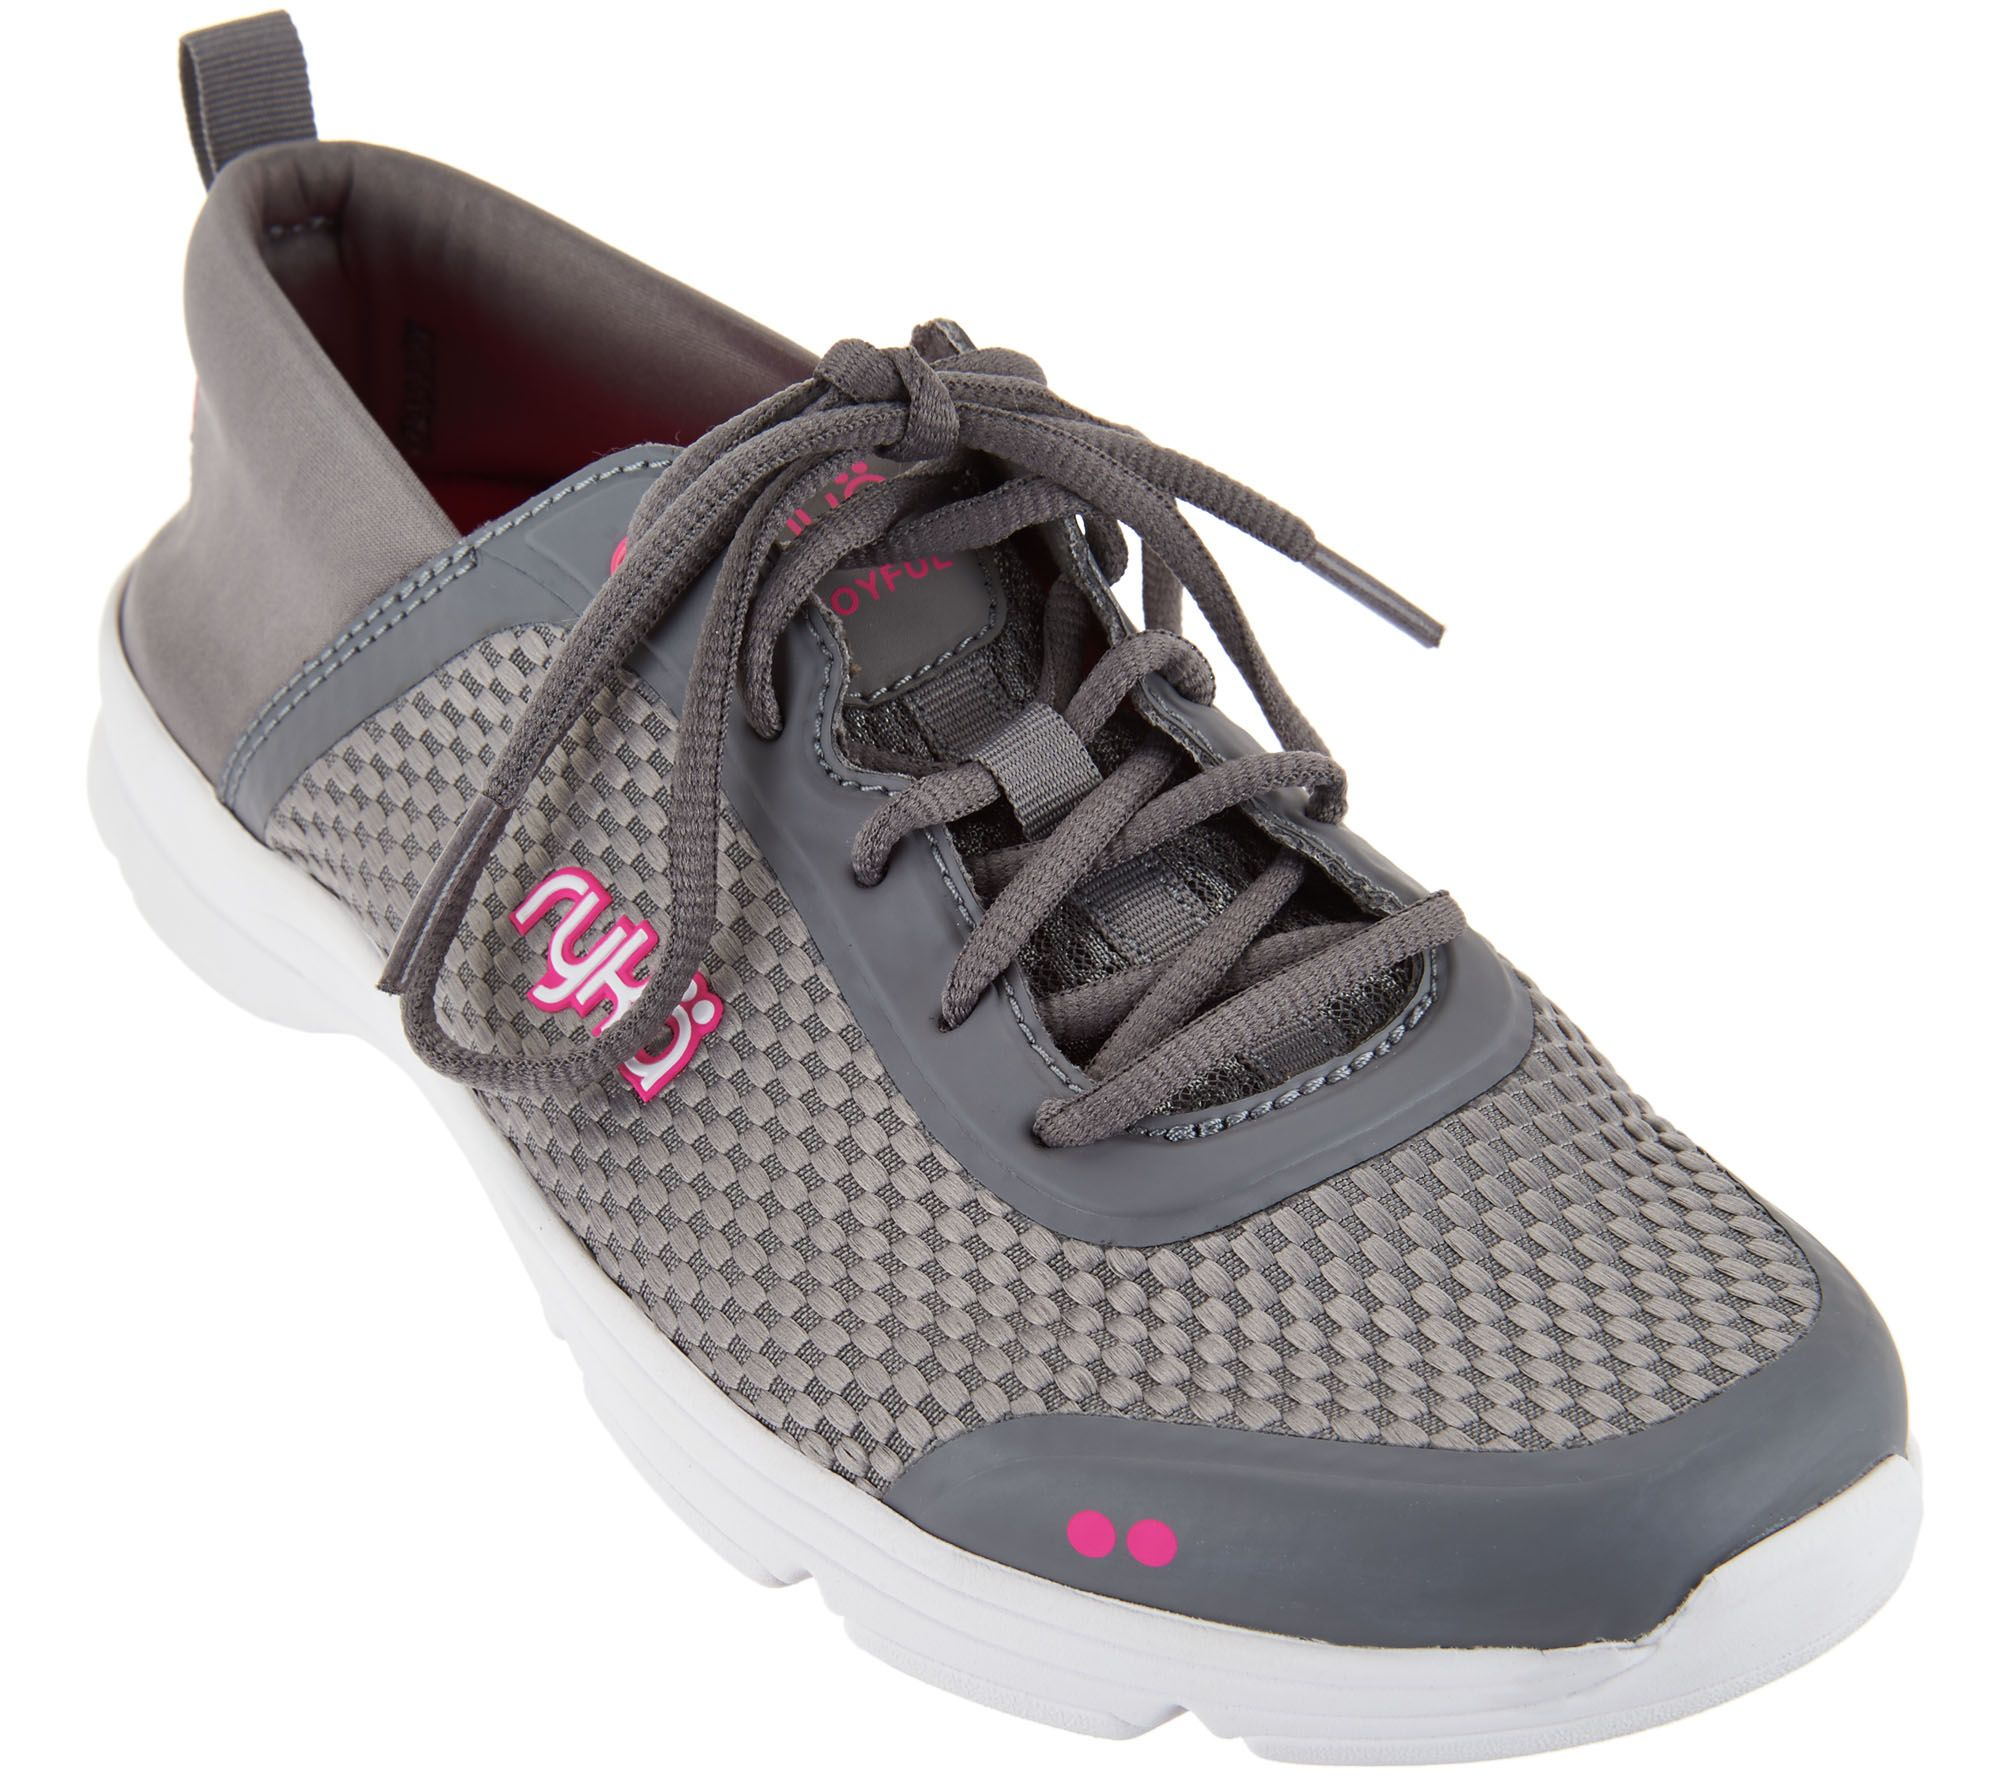 Neoprene lace-up jogging shoes